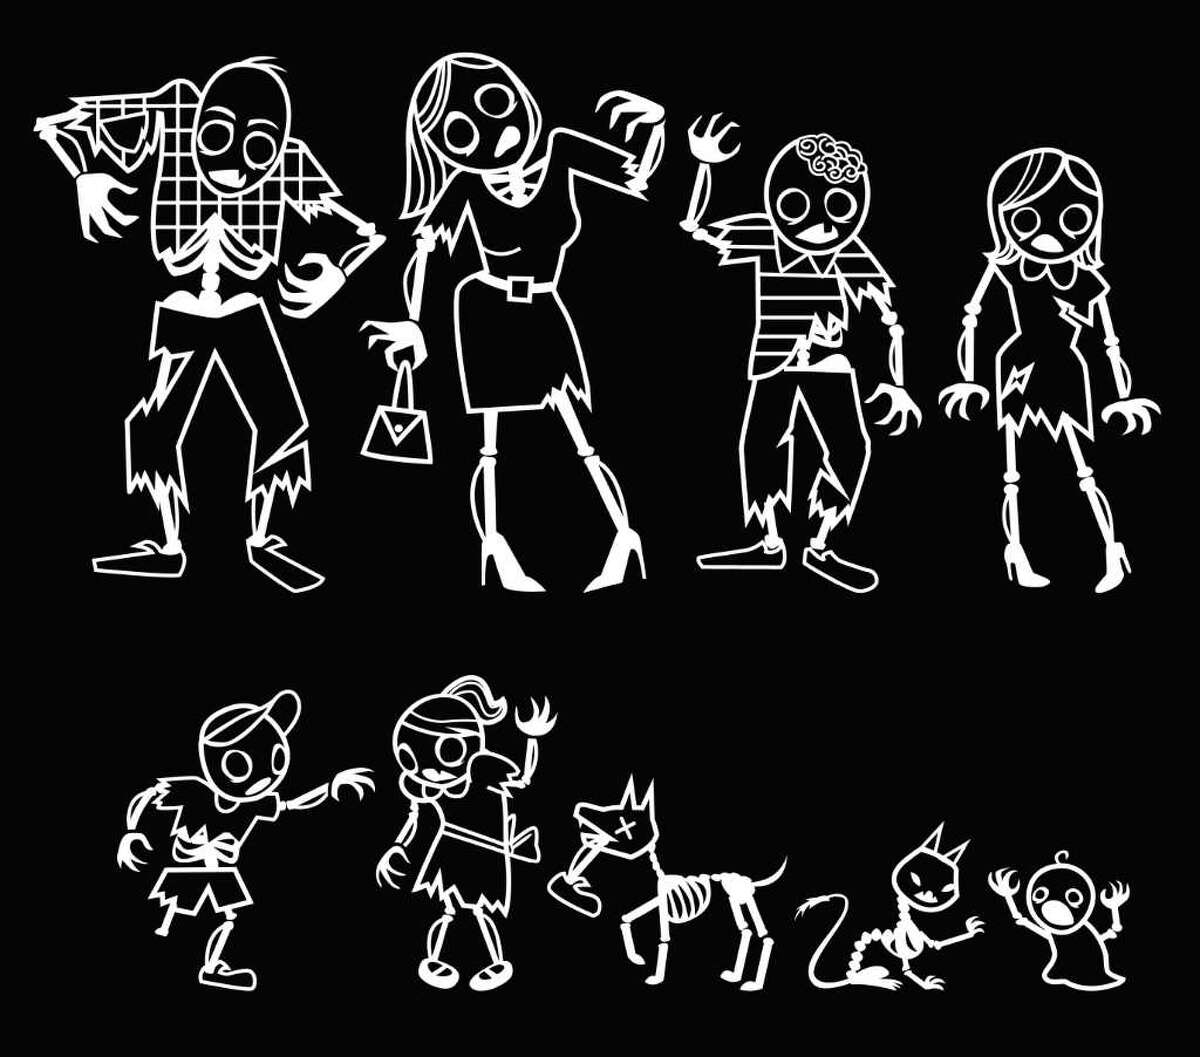 Zombie Family Car Stickers by GAMAGO.